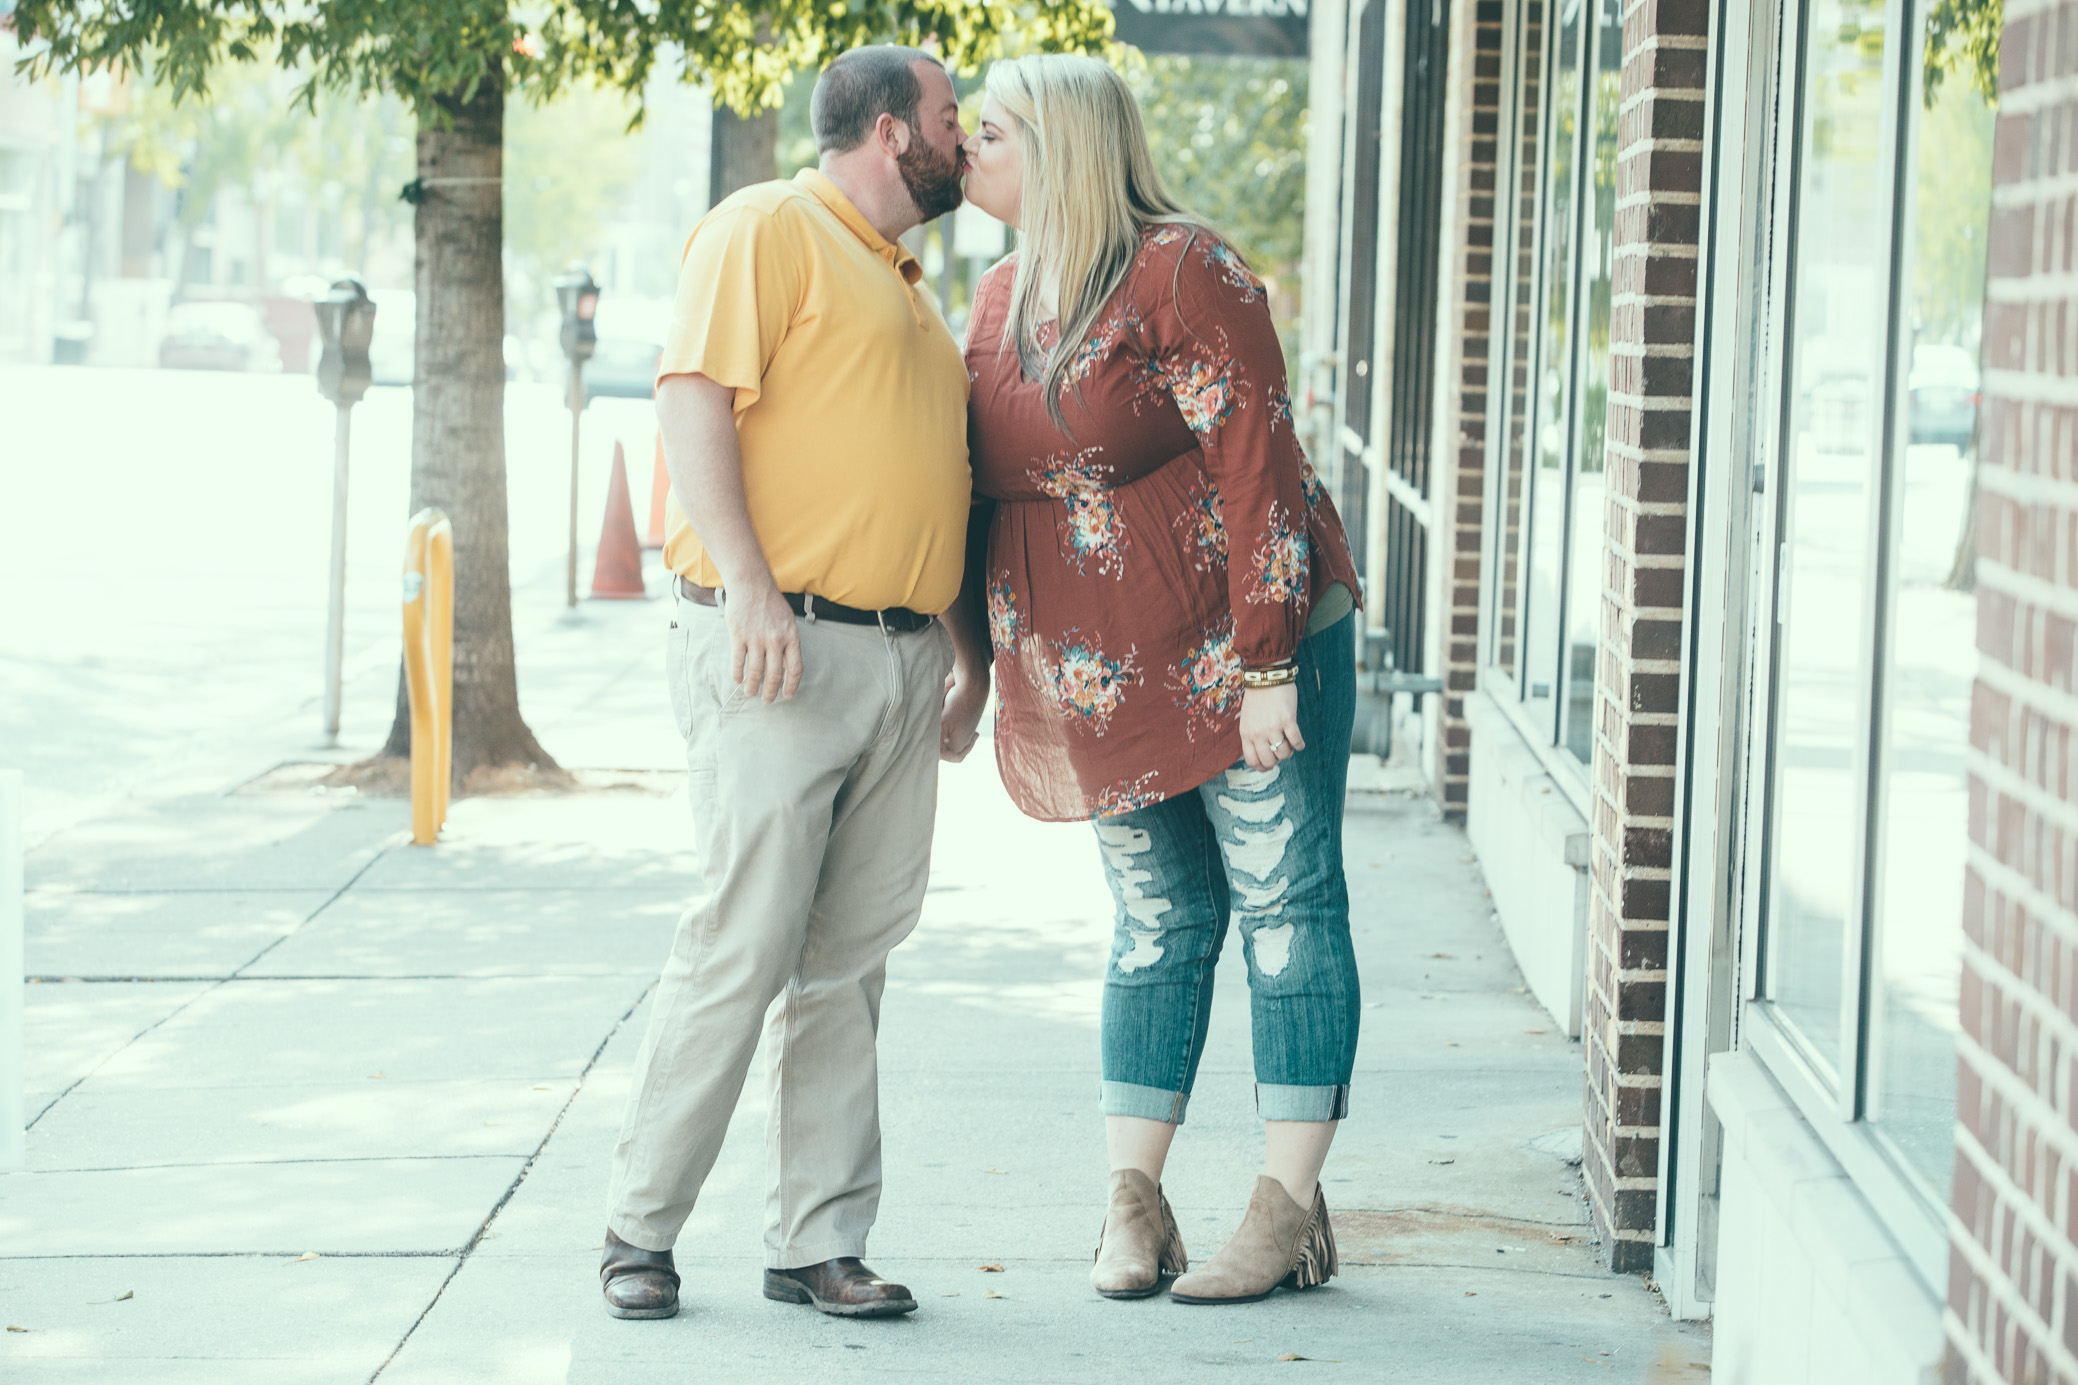 Laura and Chase's engagement photography in Birmingham, Alabama by David A. Smith of DSmithImages Wedding Photography, Portraits, and Events